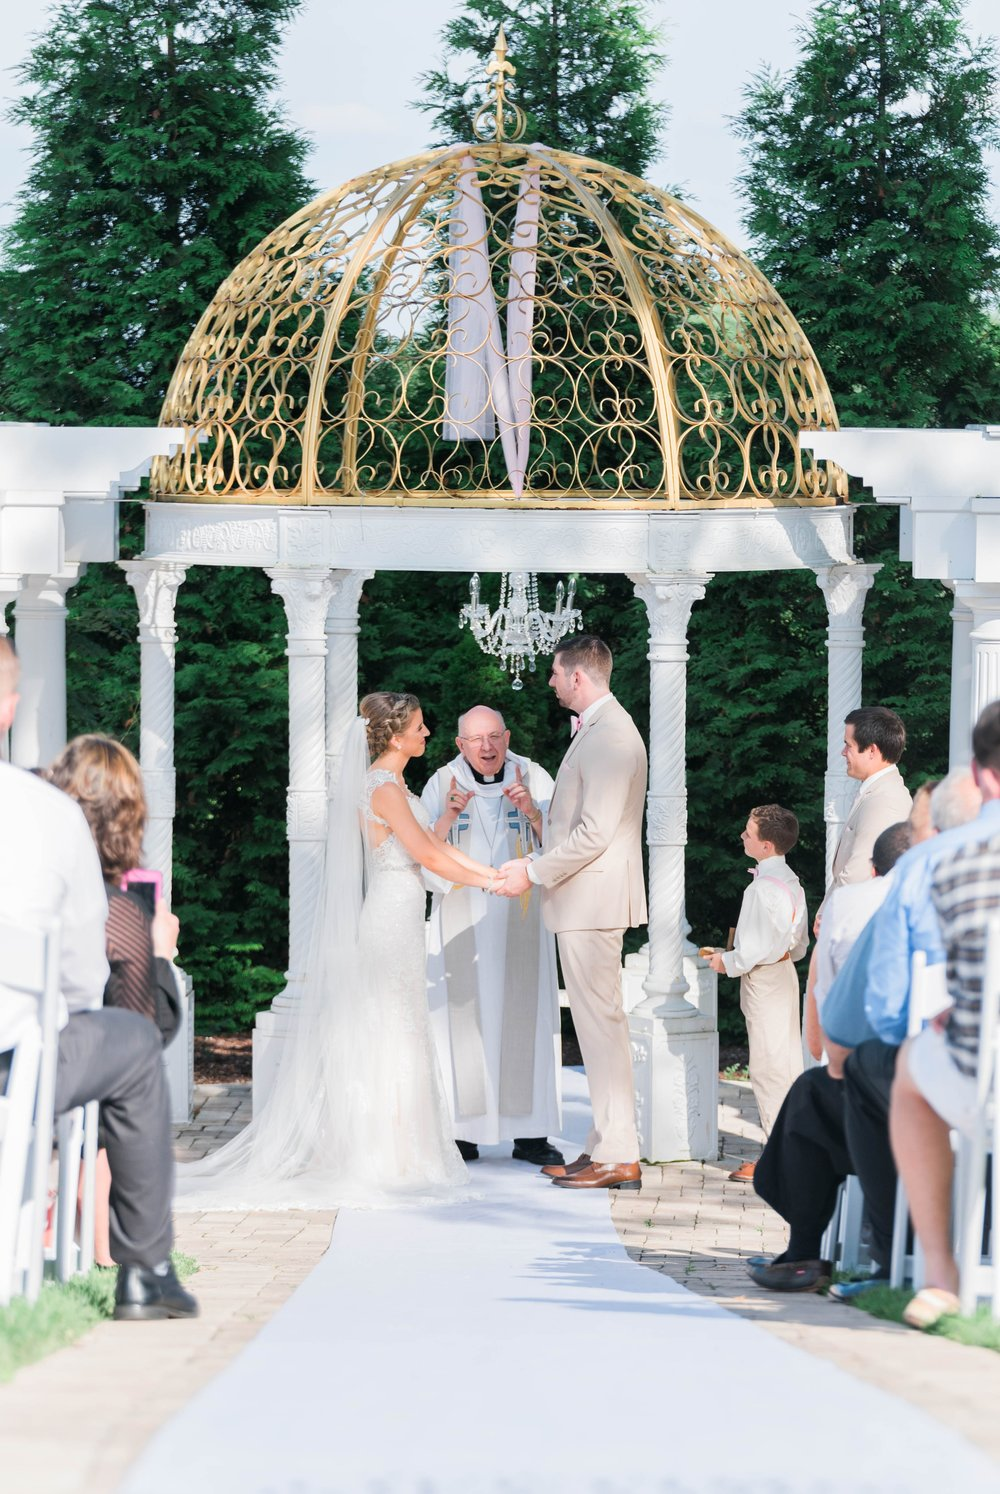 BedfordColumns_EntwinedEvents_Lynchburgwedding_VIrginiaweddingphotographer_ALlisonNIck 46.jpg